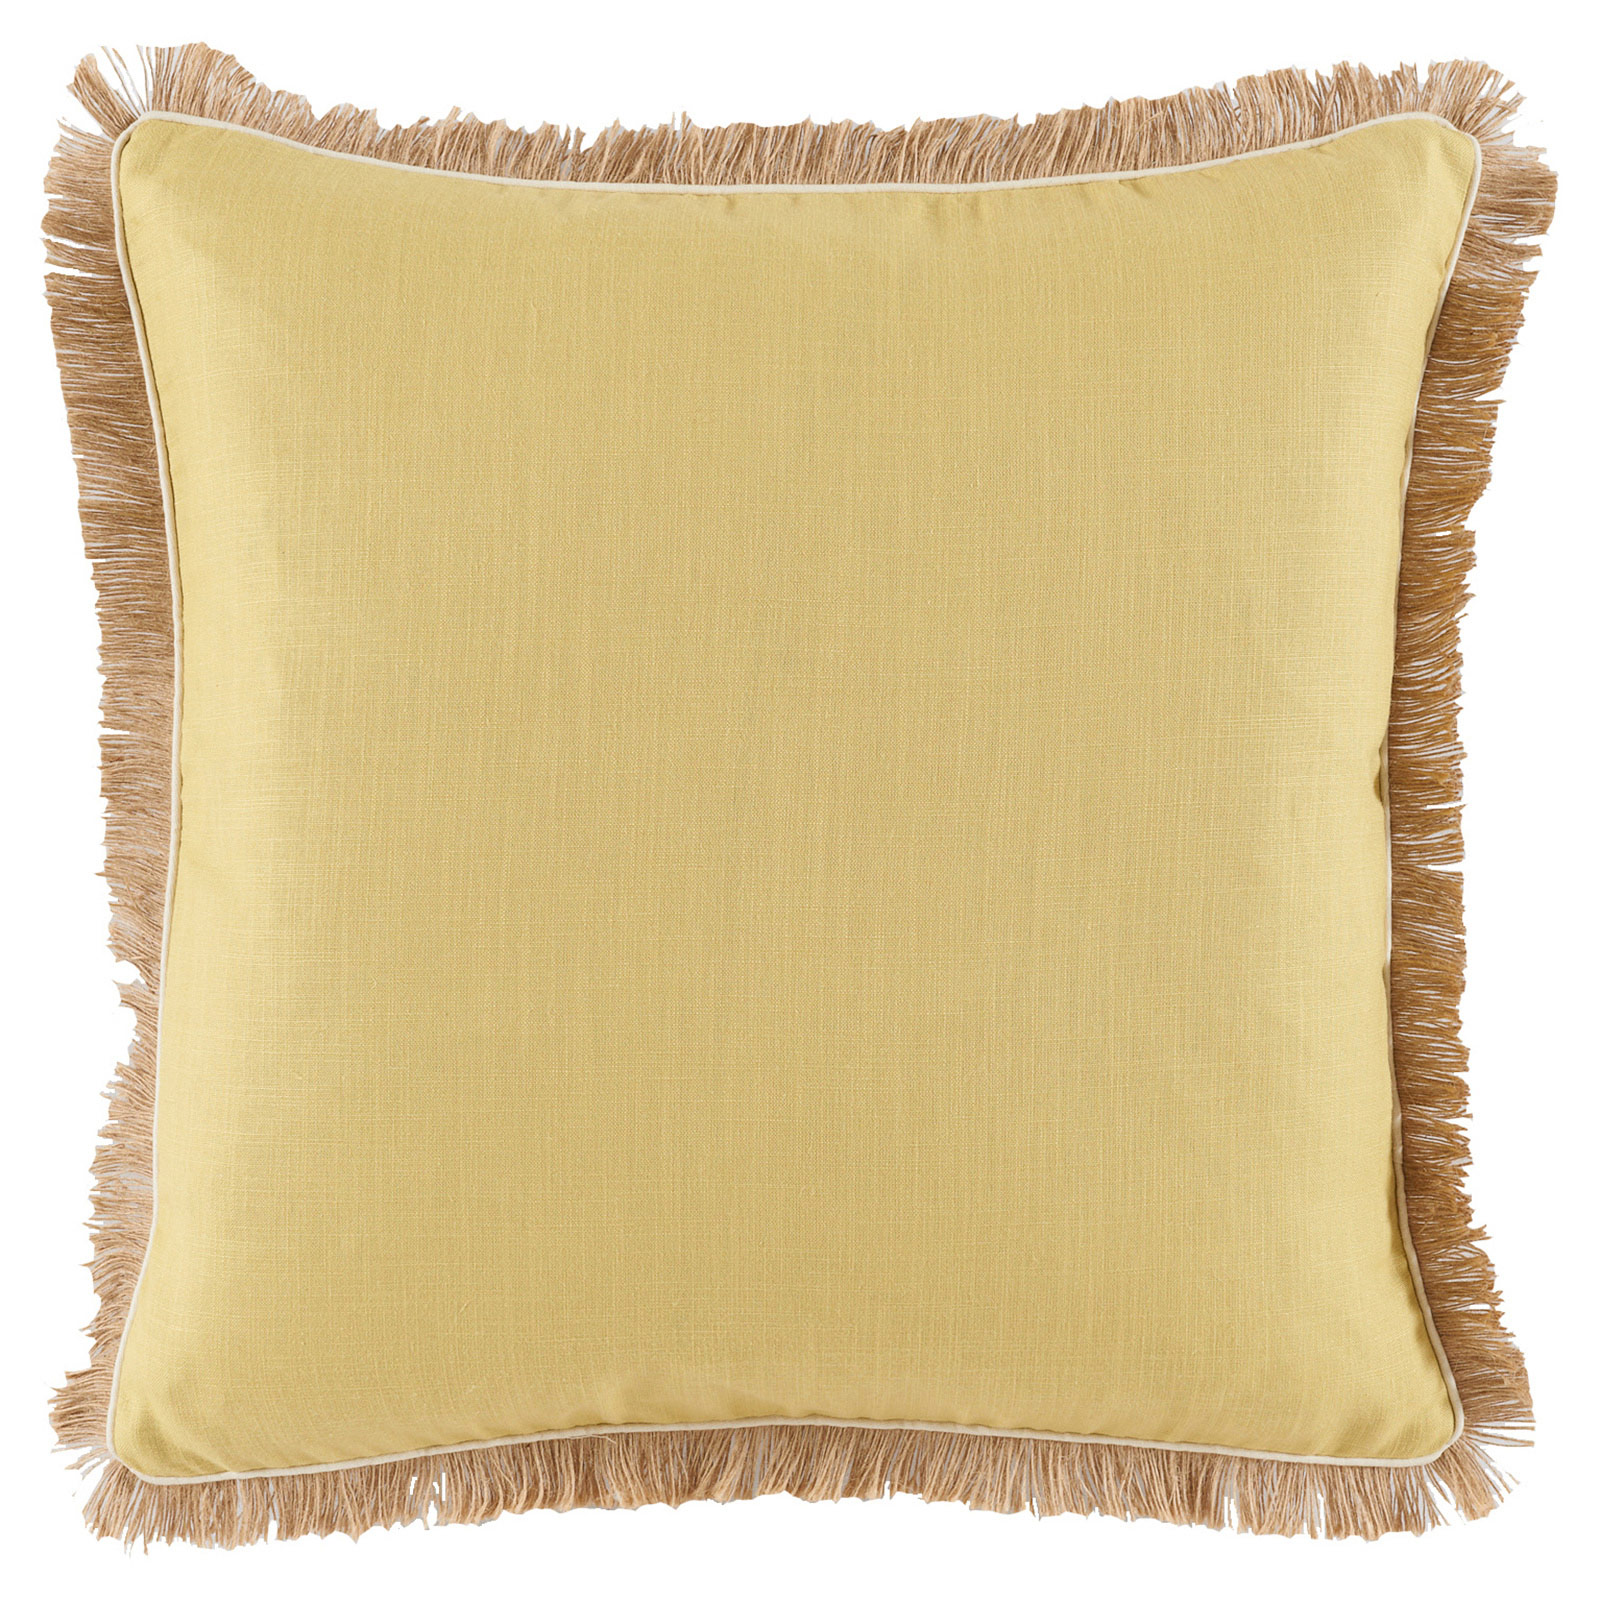 Mamie Modern Pipe Fringe Yellow Linen Pillow - 24x24